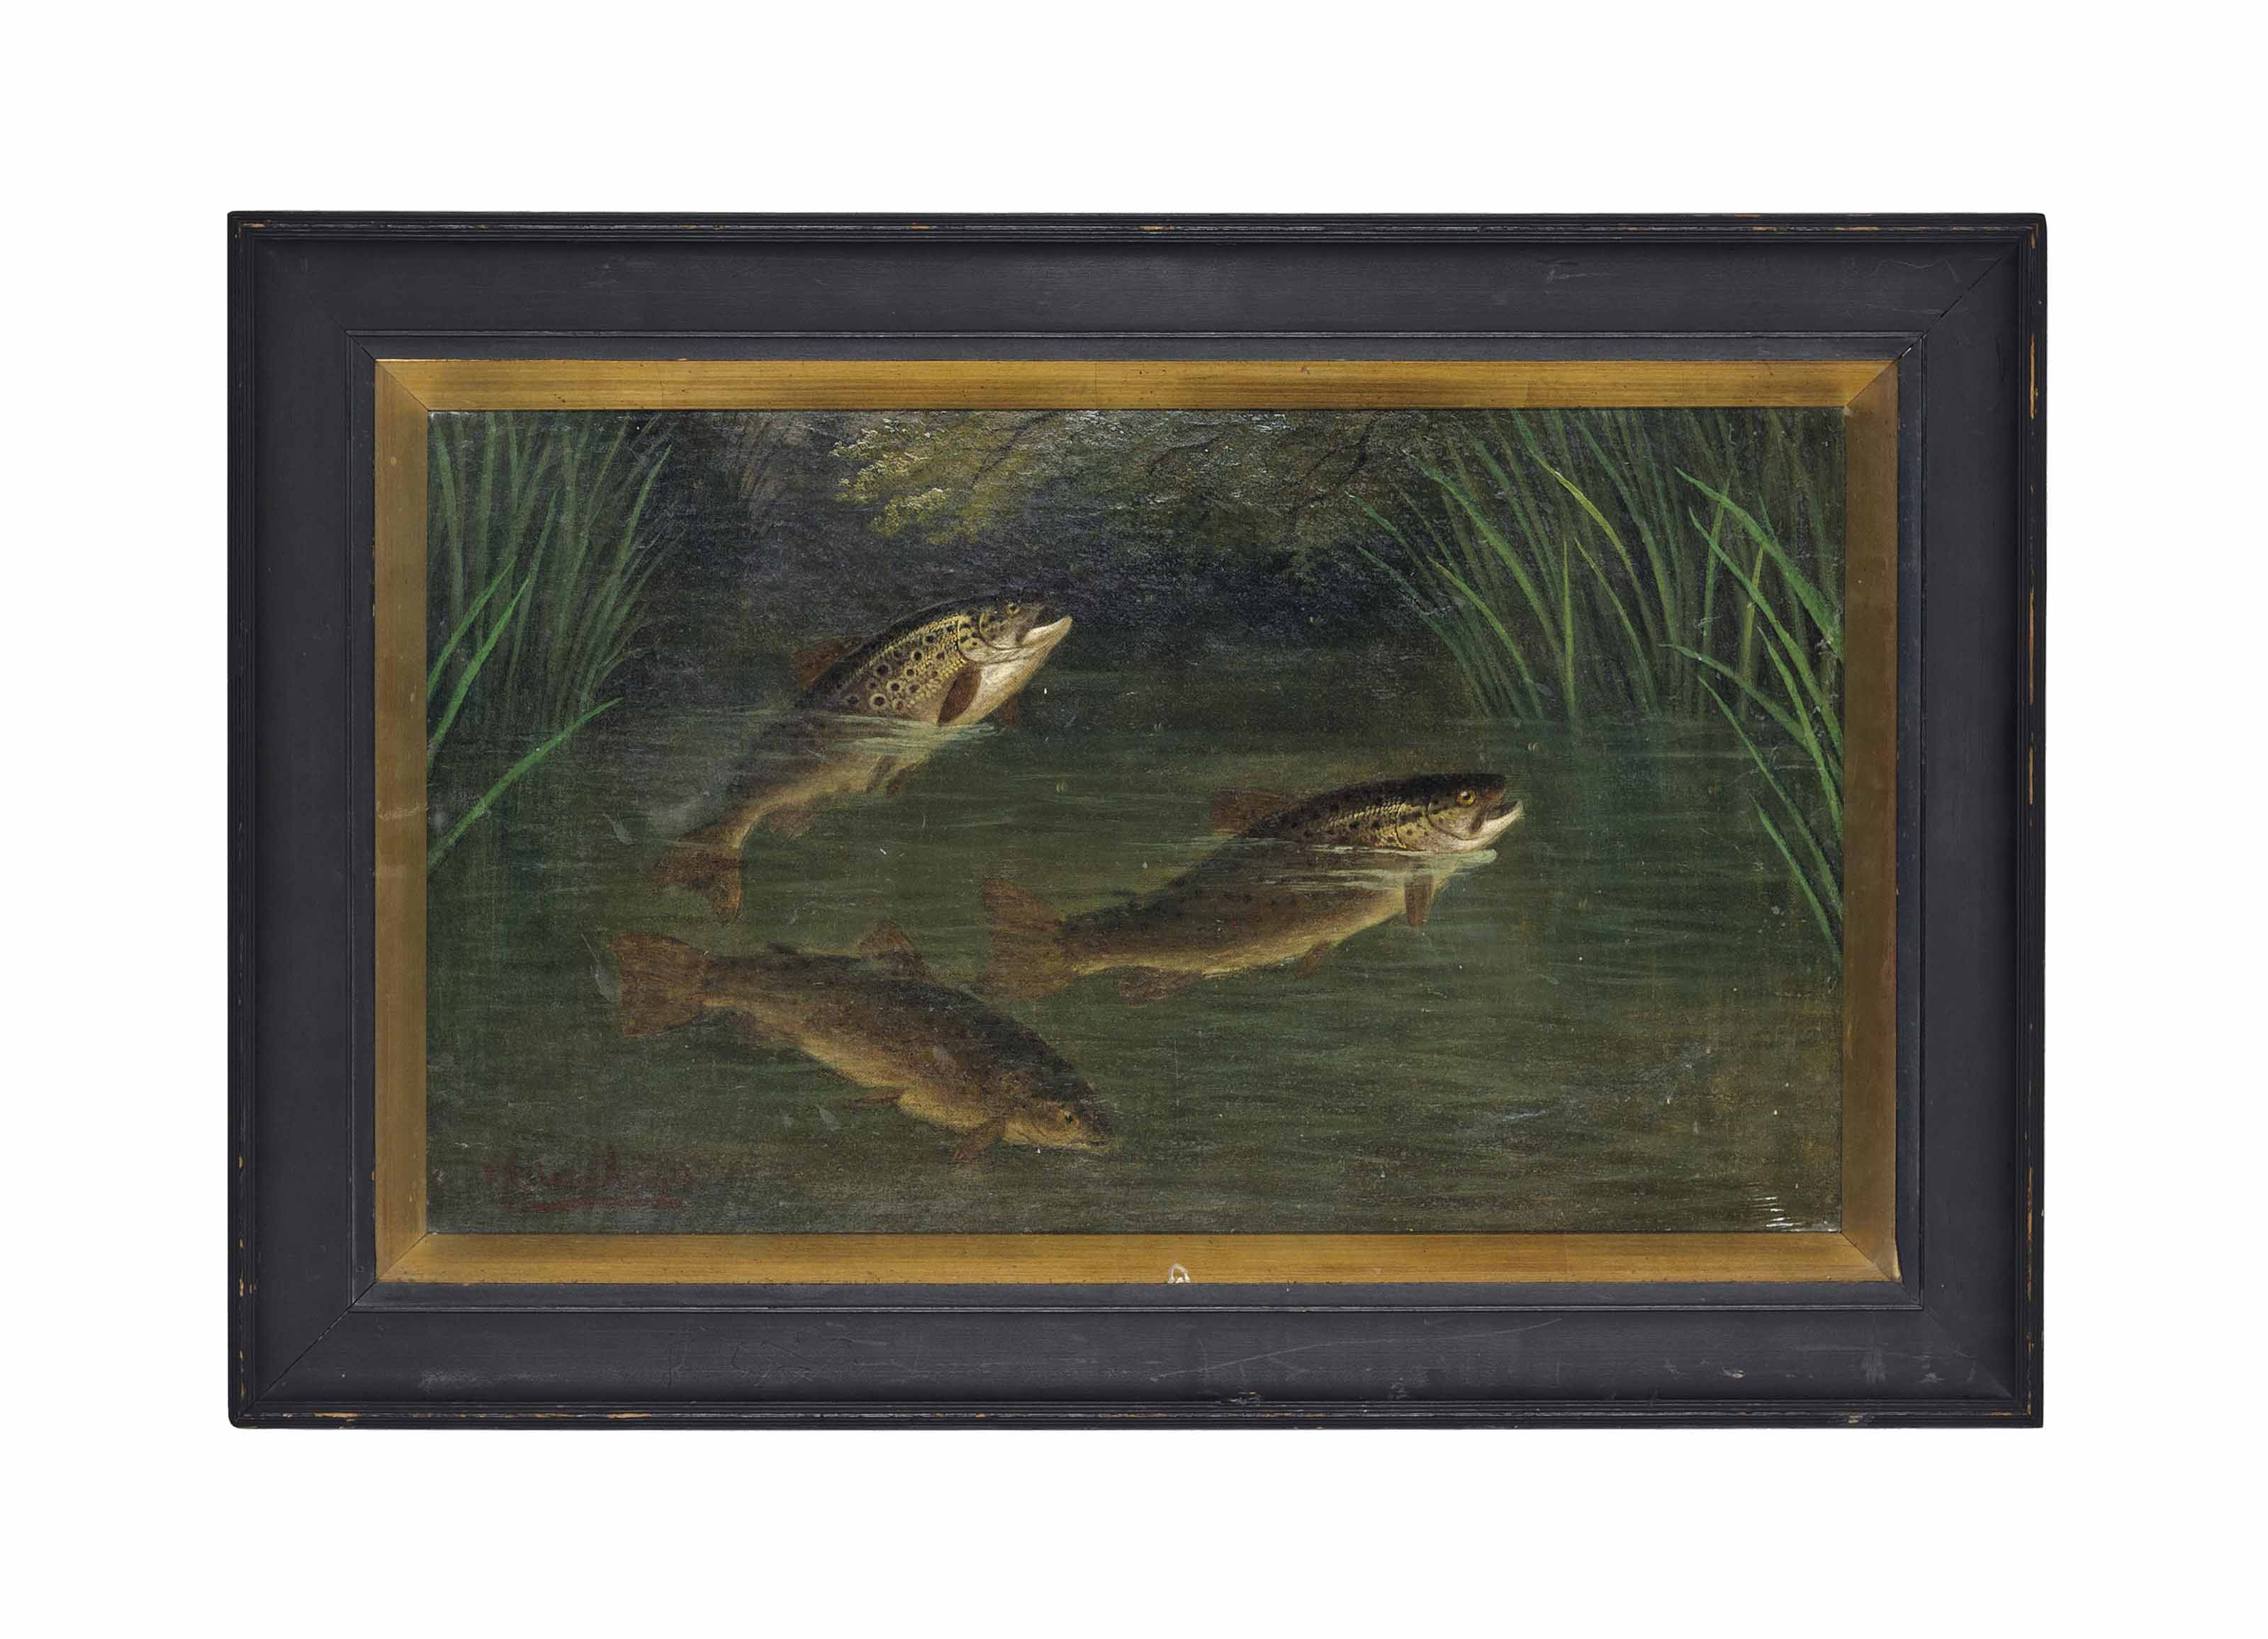 Trout in a river